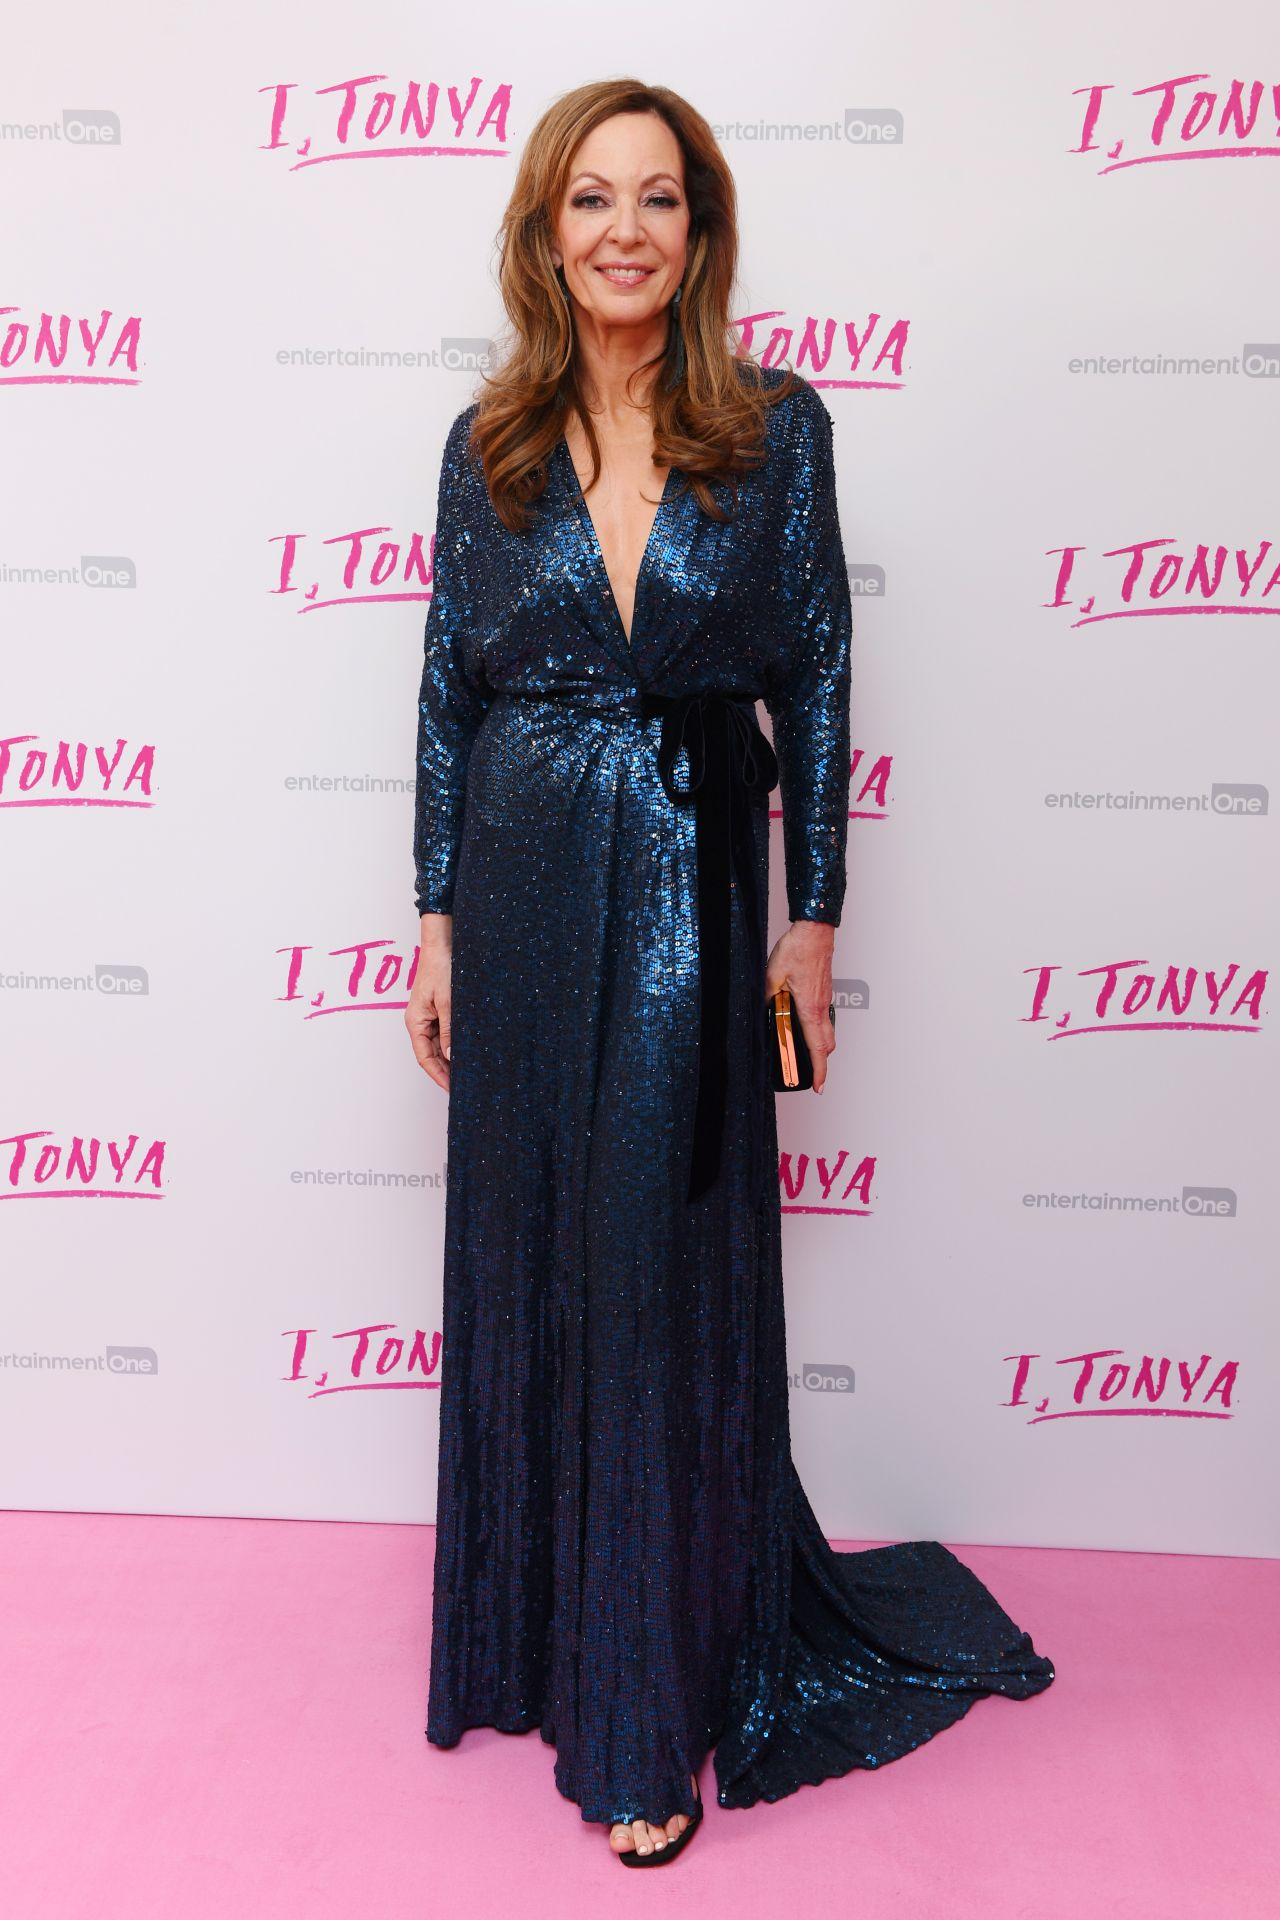 allison-janney-i-tonya-premiere-in-london-4